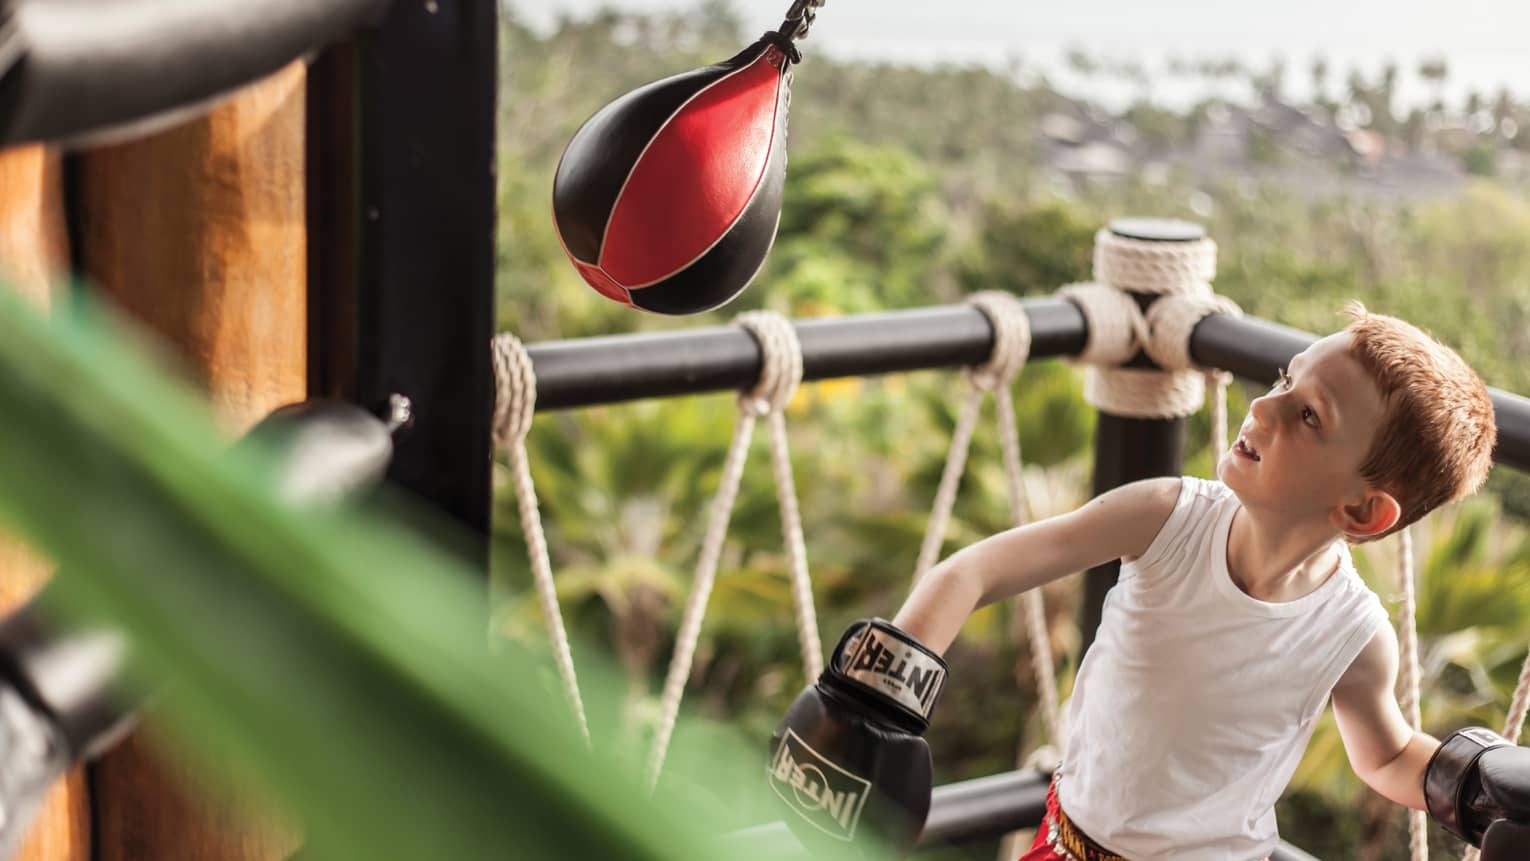 Young boy wearing boxing gloves in ring with small Muay Thai boxing bag